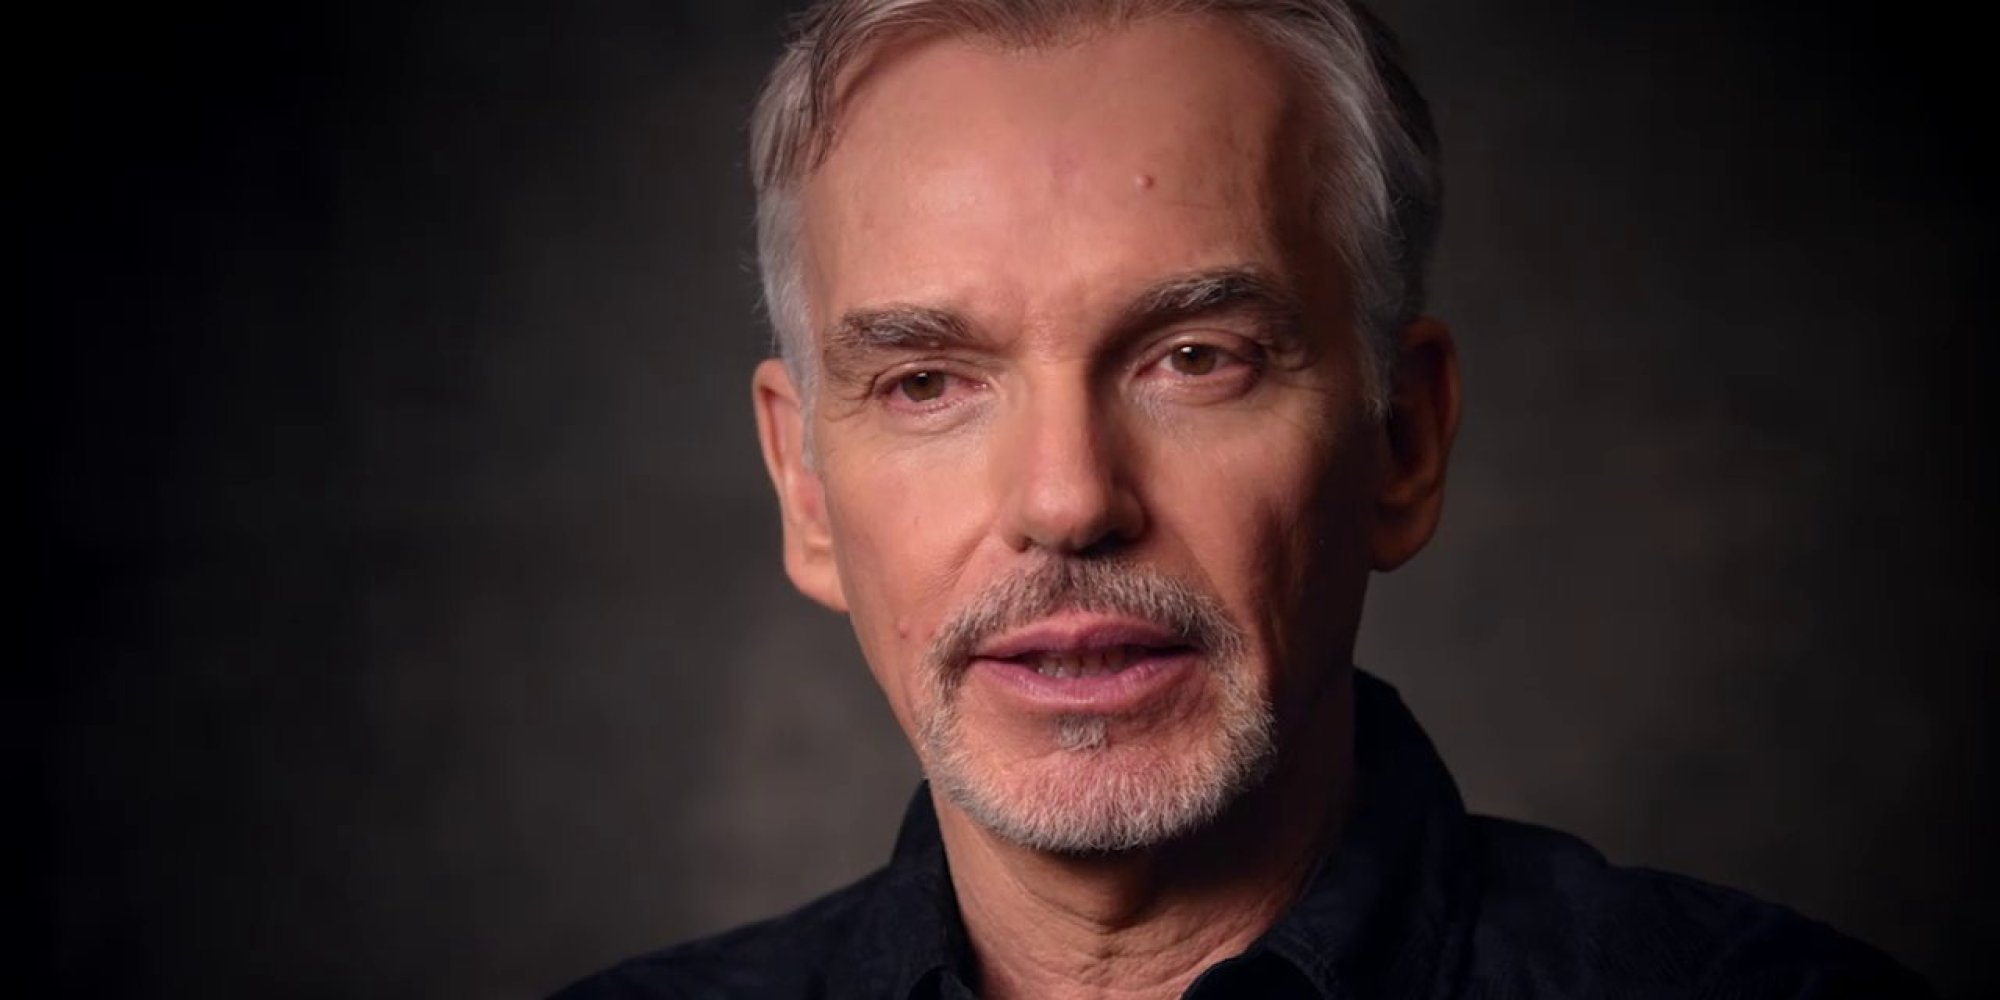 Billy Bob Thornton facts